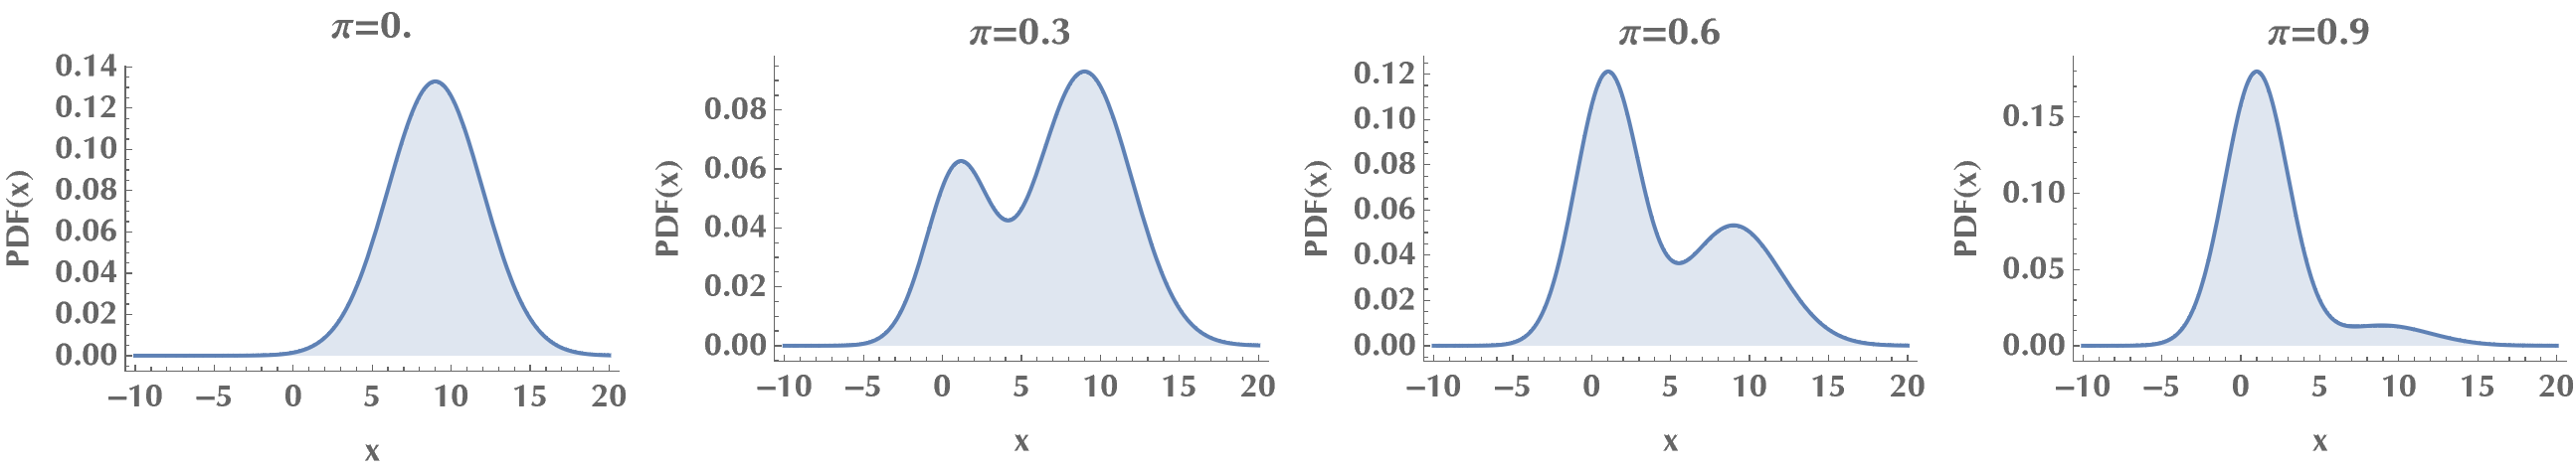 PDF of mixture distribution for varying mixing probability